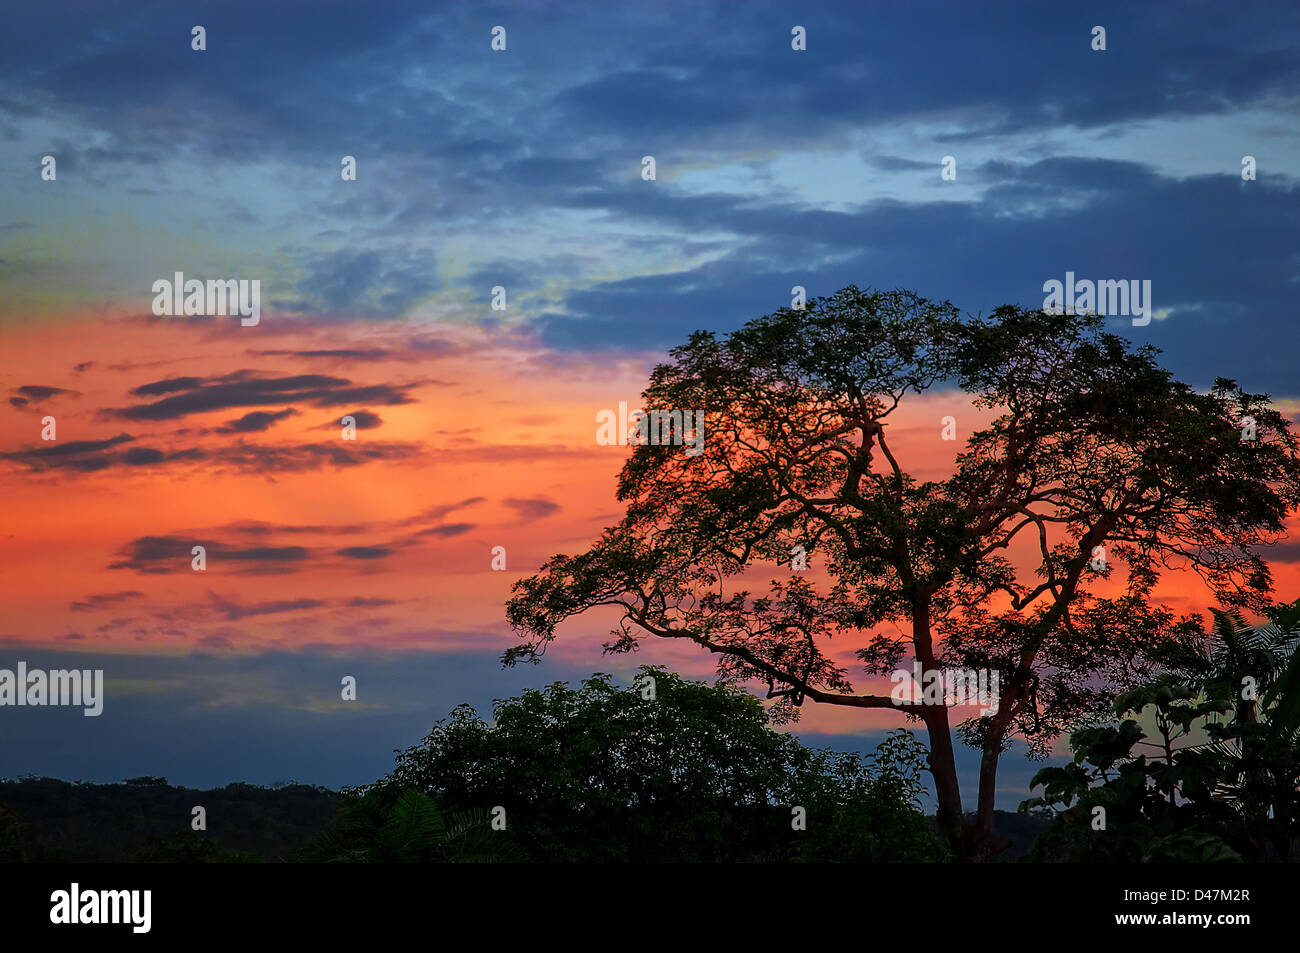 Dusk with a blue sky with a red band and the silhouette of a tree in the foreground. - Stock Image